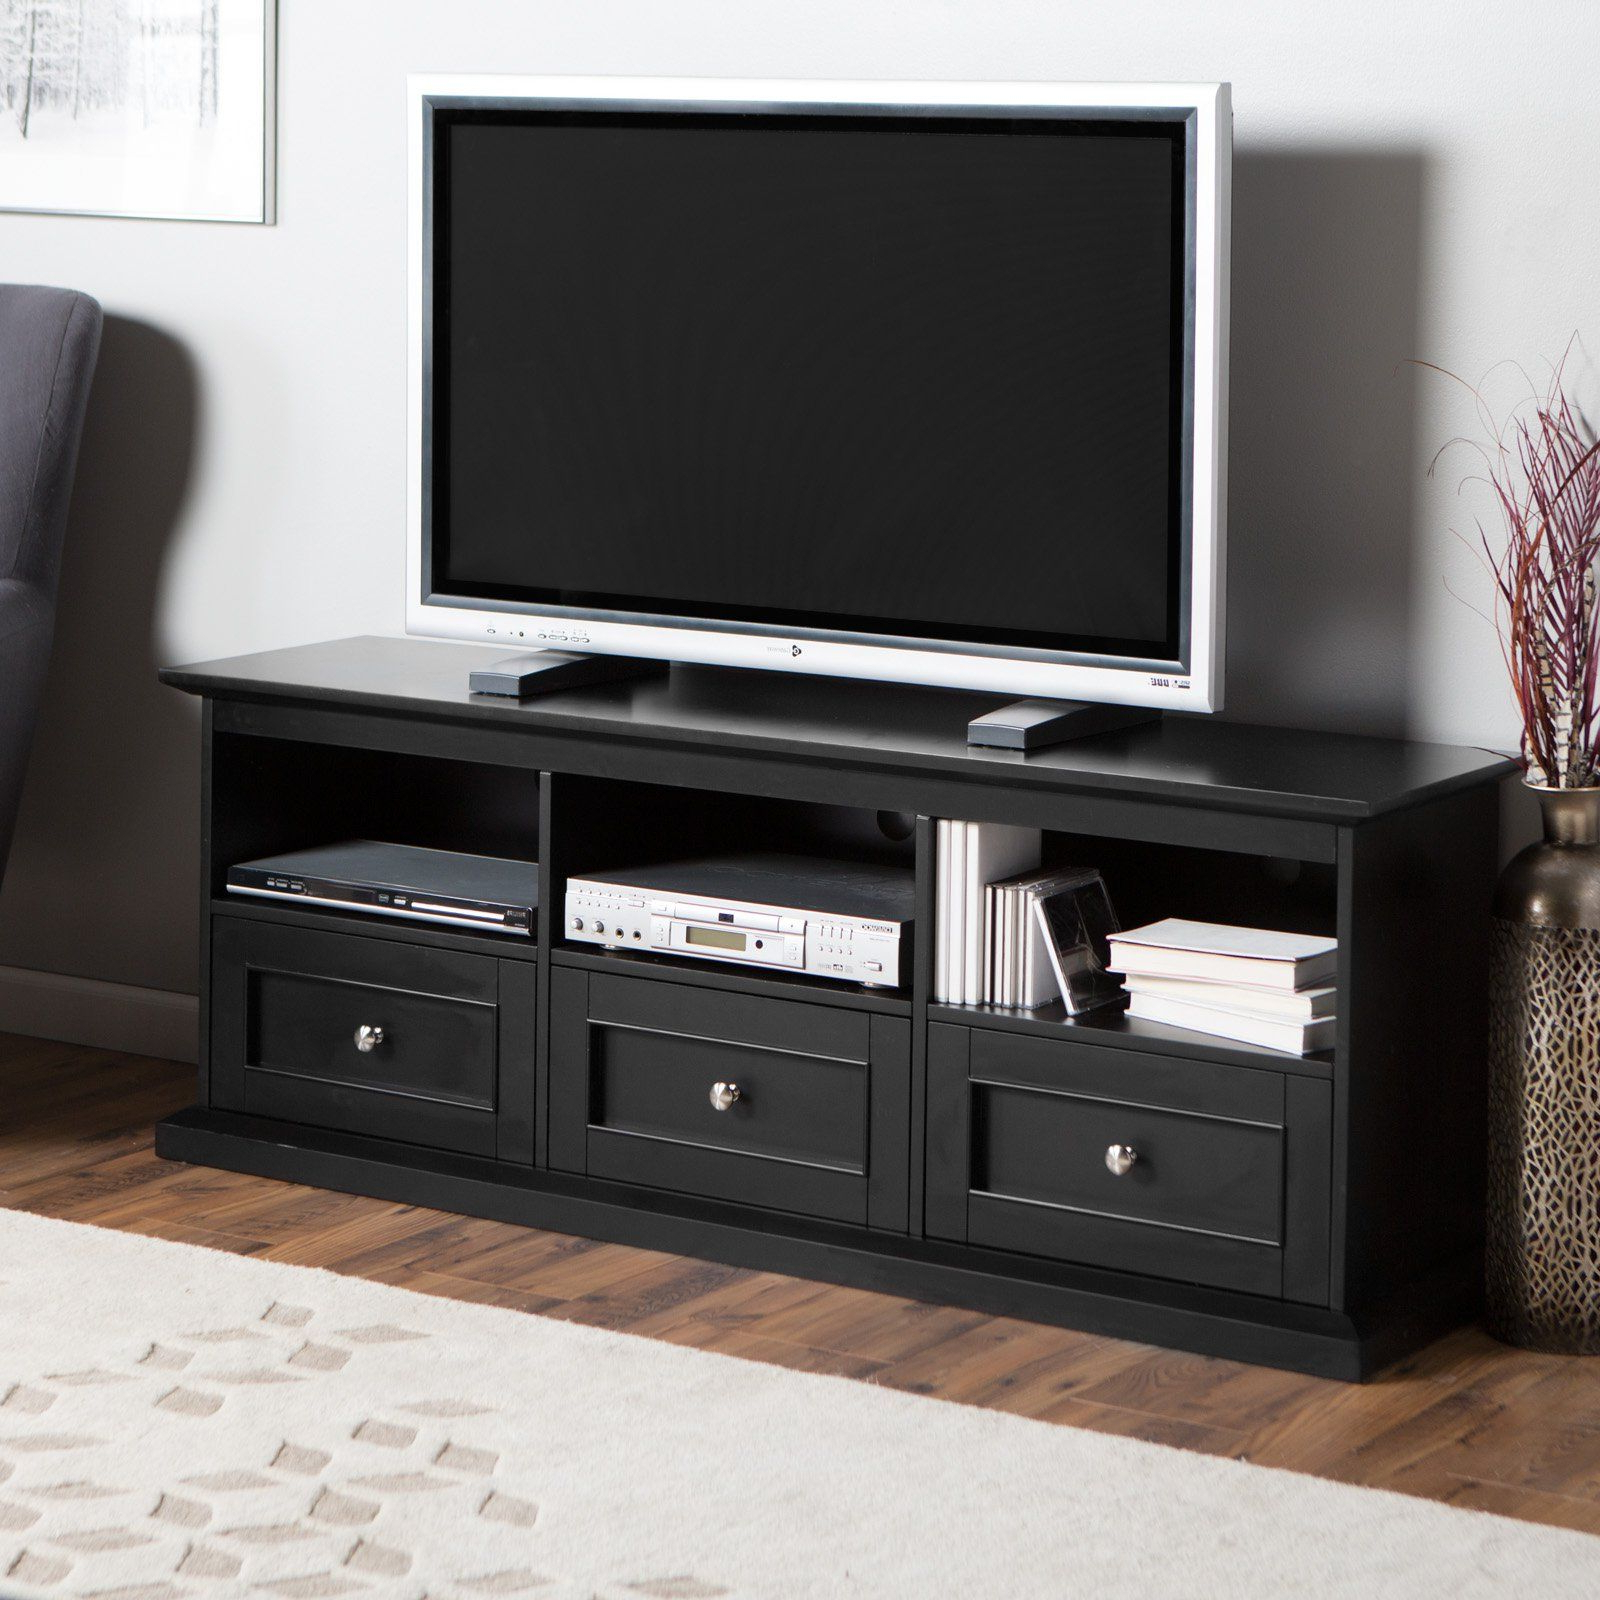 Latest Black Tv Cabinets With Drawers With Regard To Belham Living Hampton Tv Stand With Drawers – Black – Get The Casual (View 11 of 20)